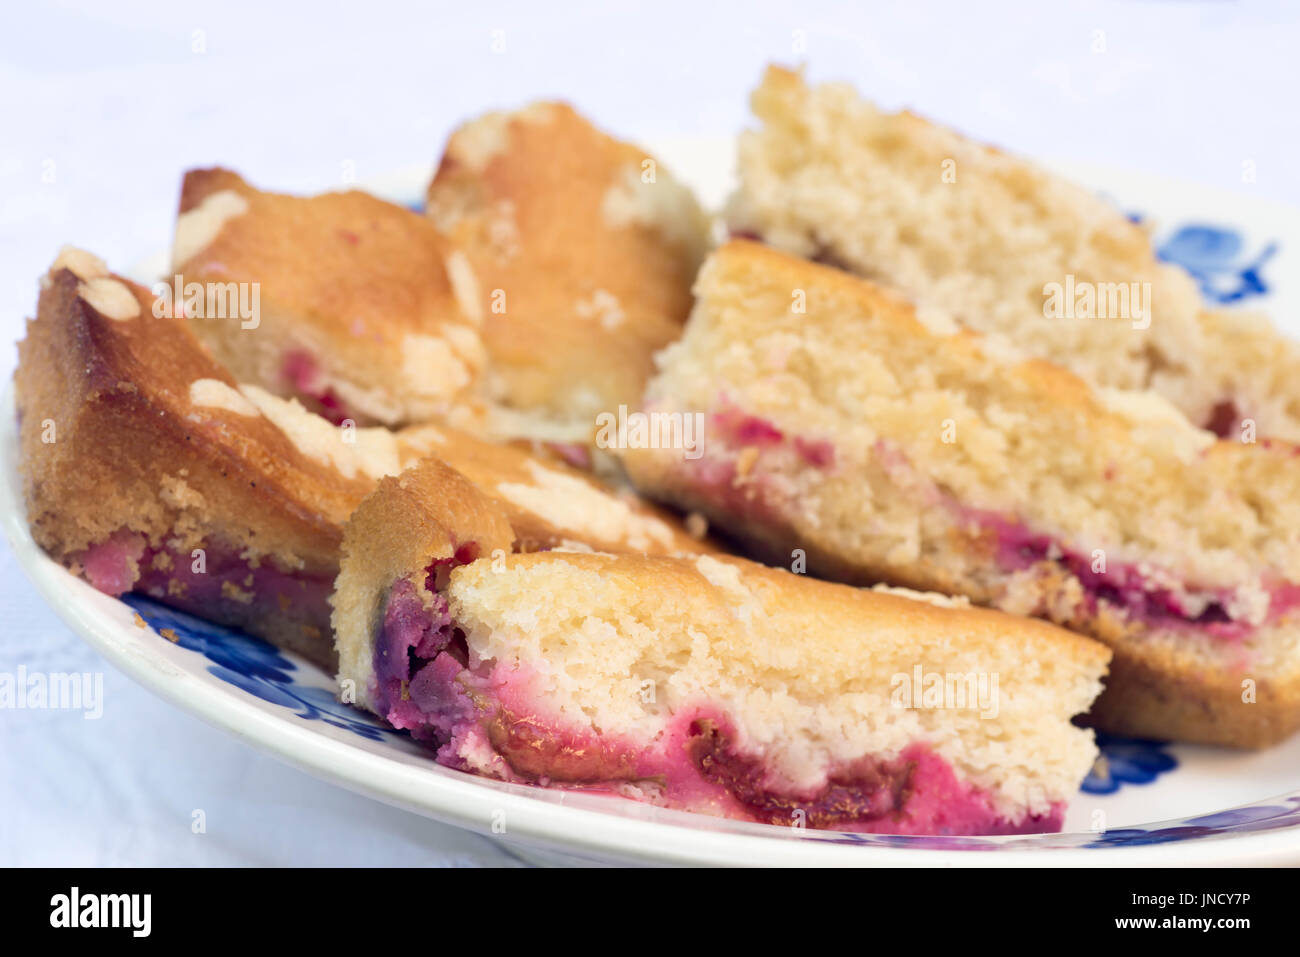 yeast cake with plums on plate - Stock Image